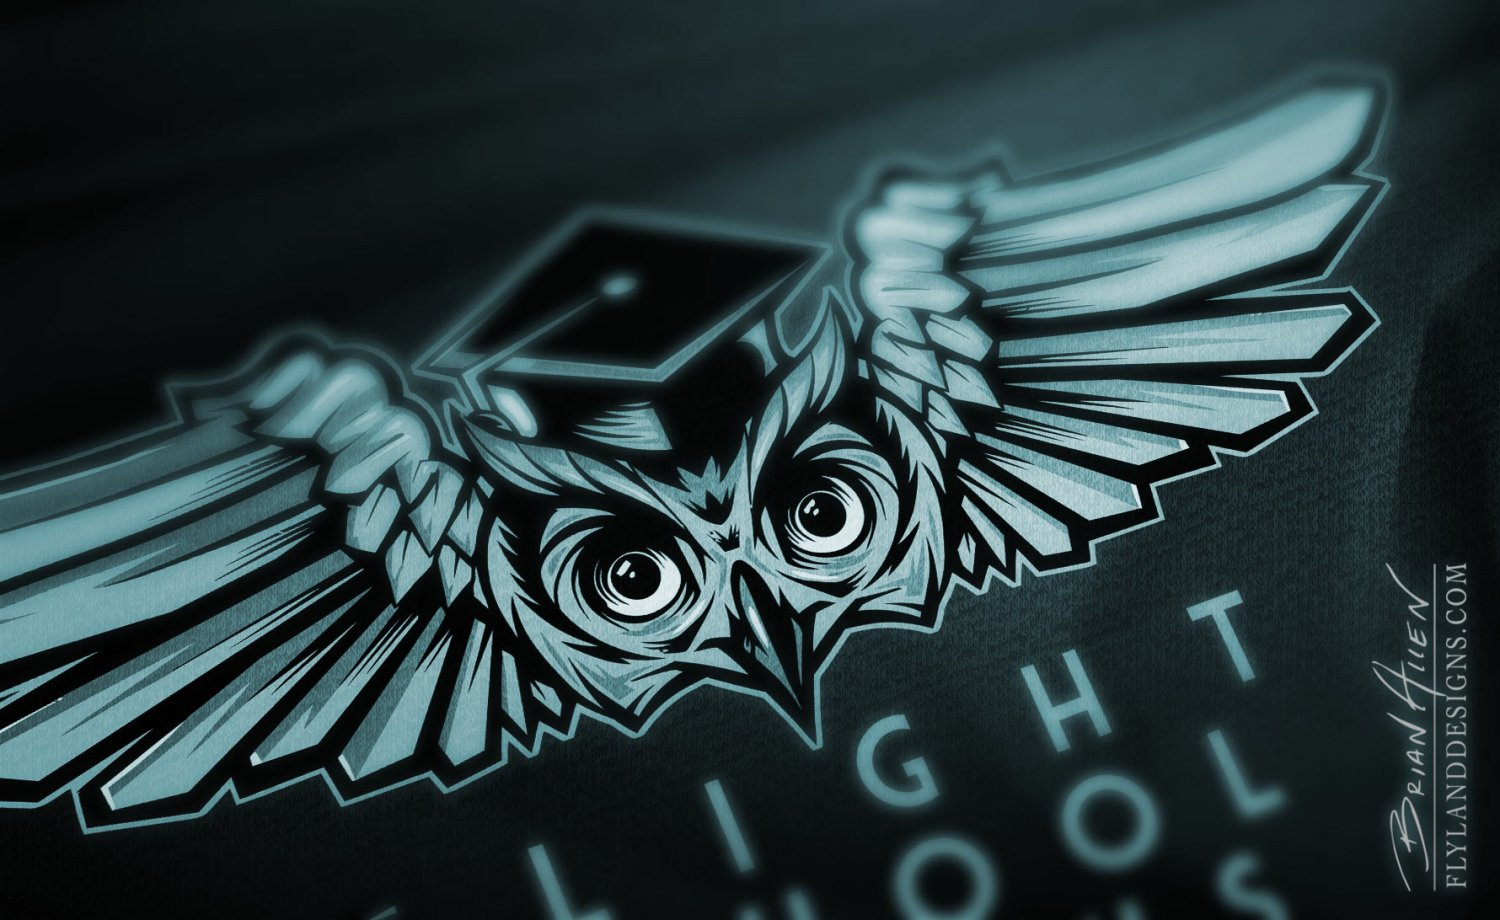 Owl emblem logo design detail view